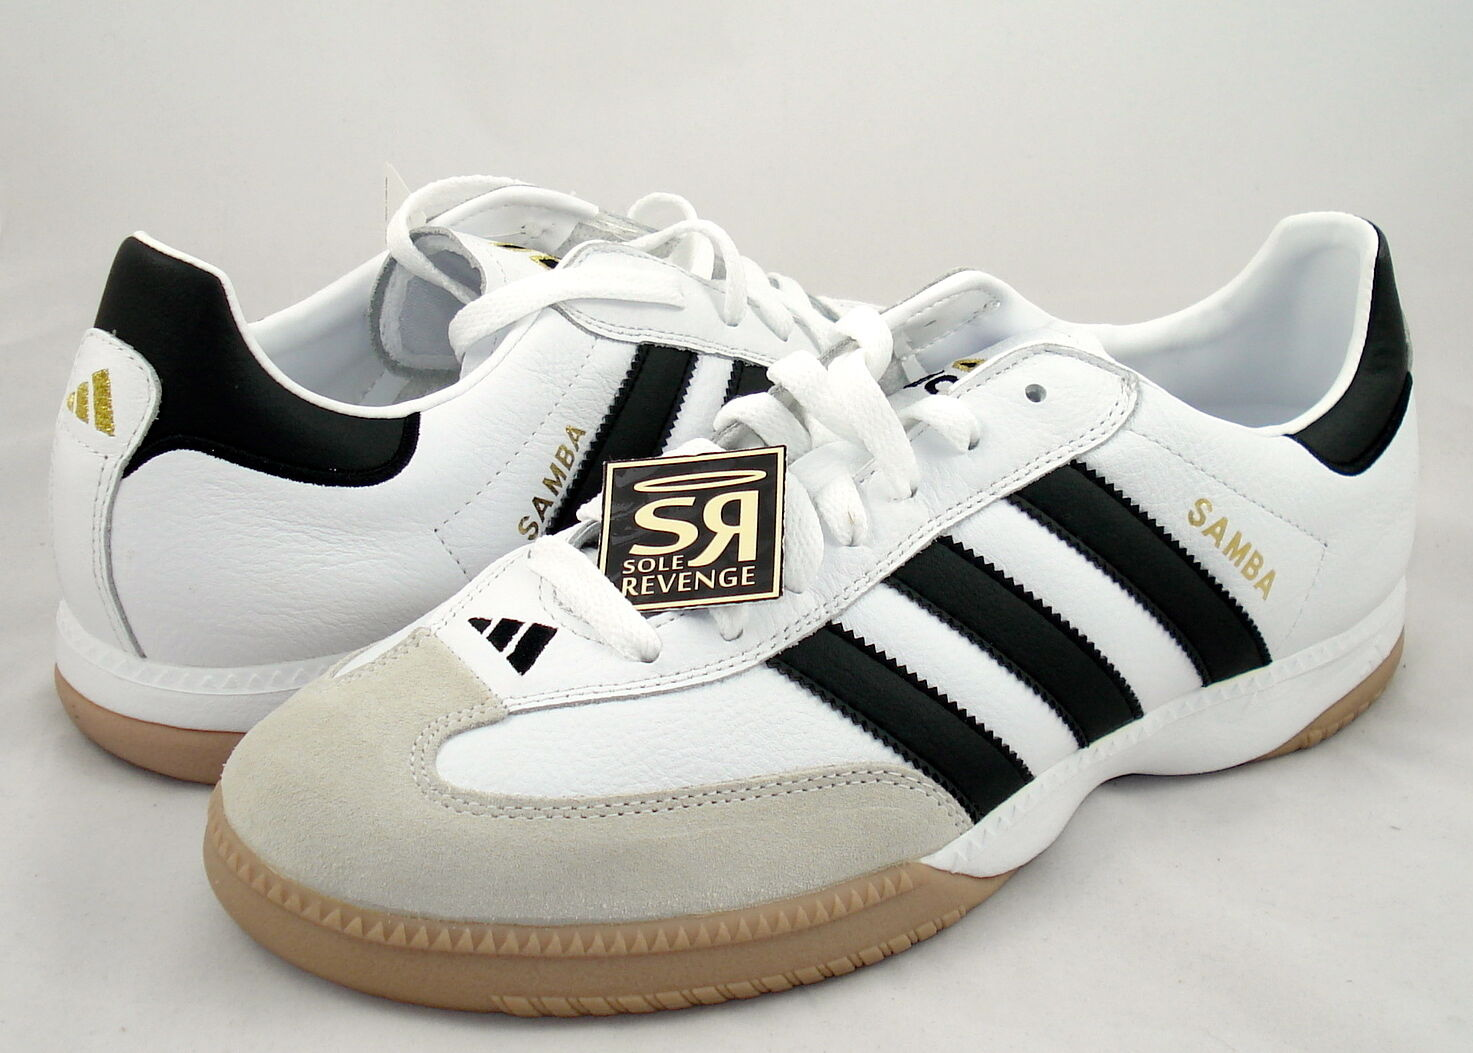 New  Adidas Samba Millennium shoes White Black gold Trainers indoor soccer shoes